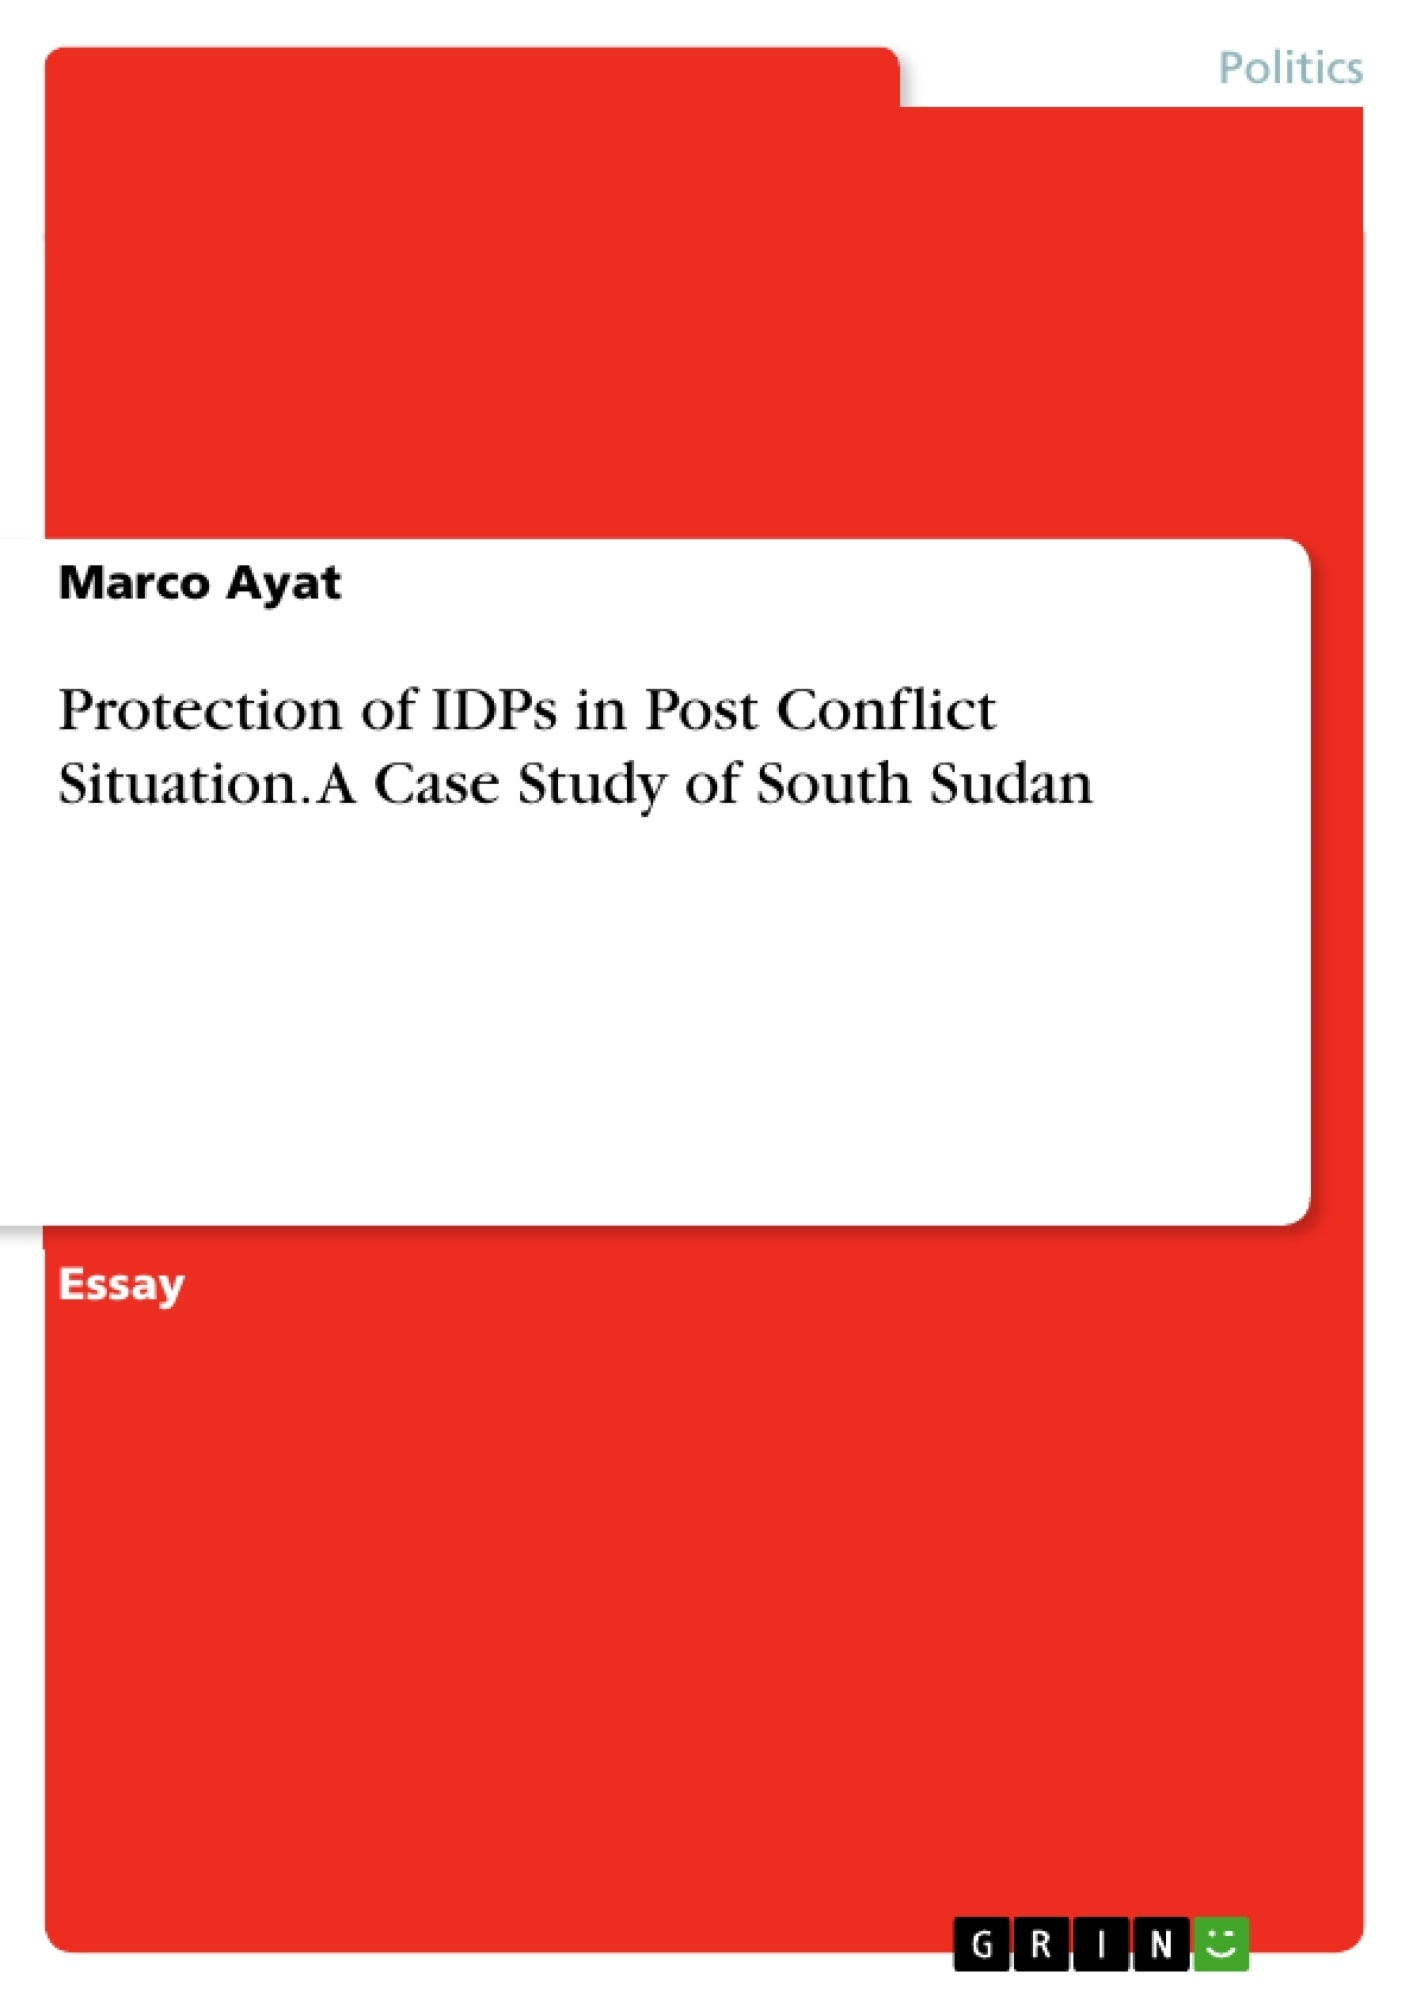 Title: Protection of IDPs in Post Conflict Situation. A Case Study of South Sudan